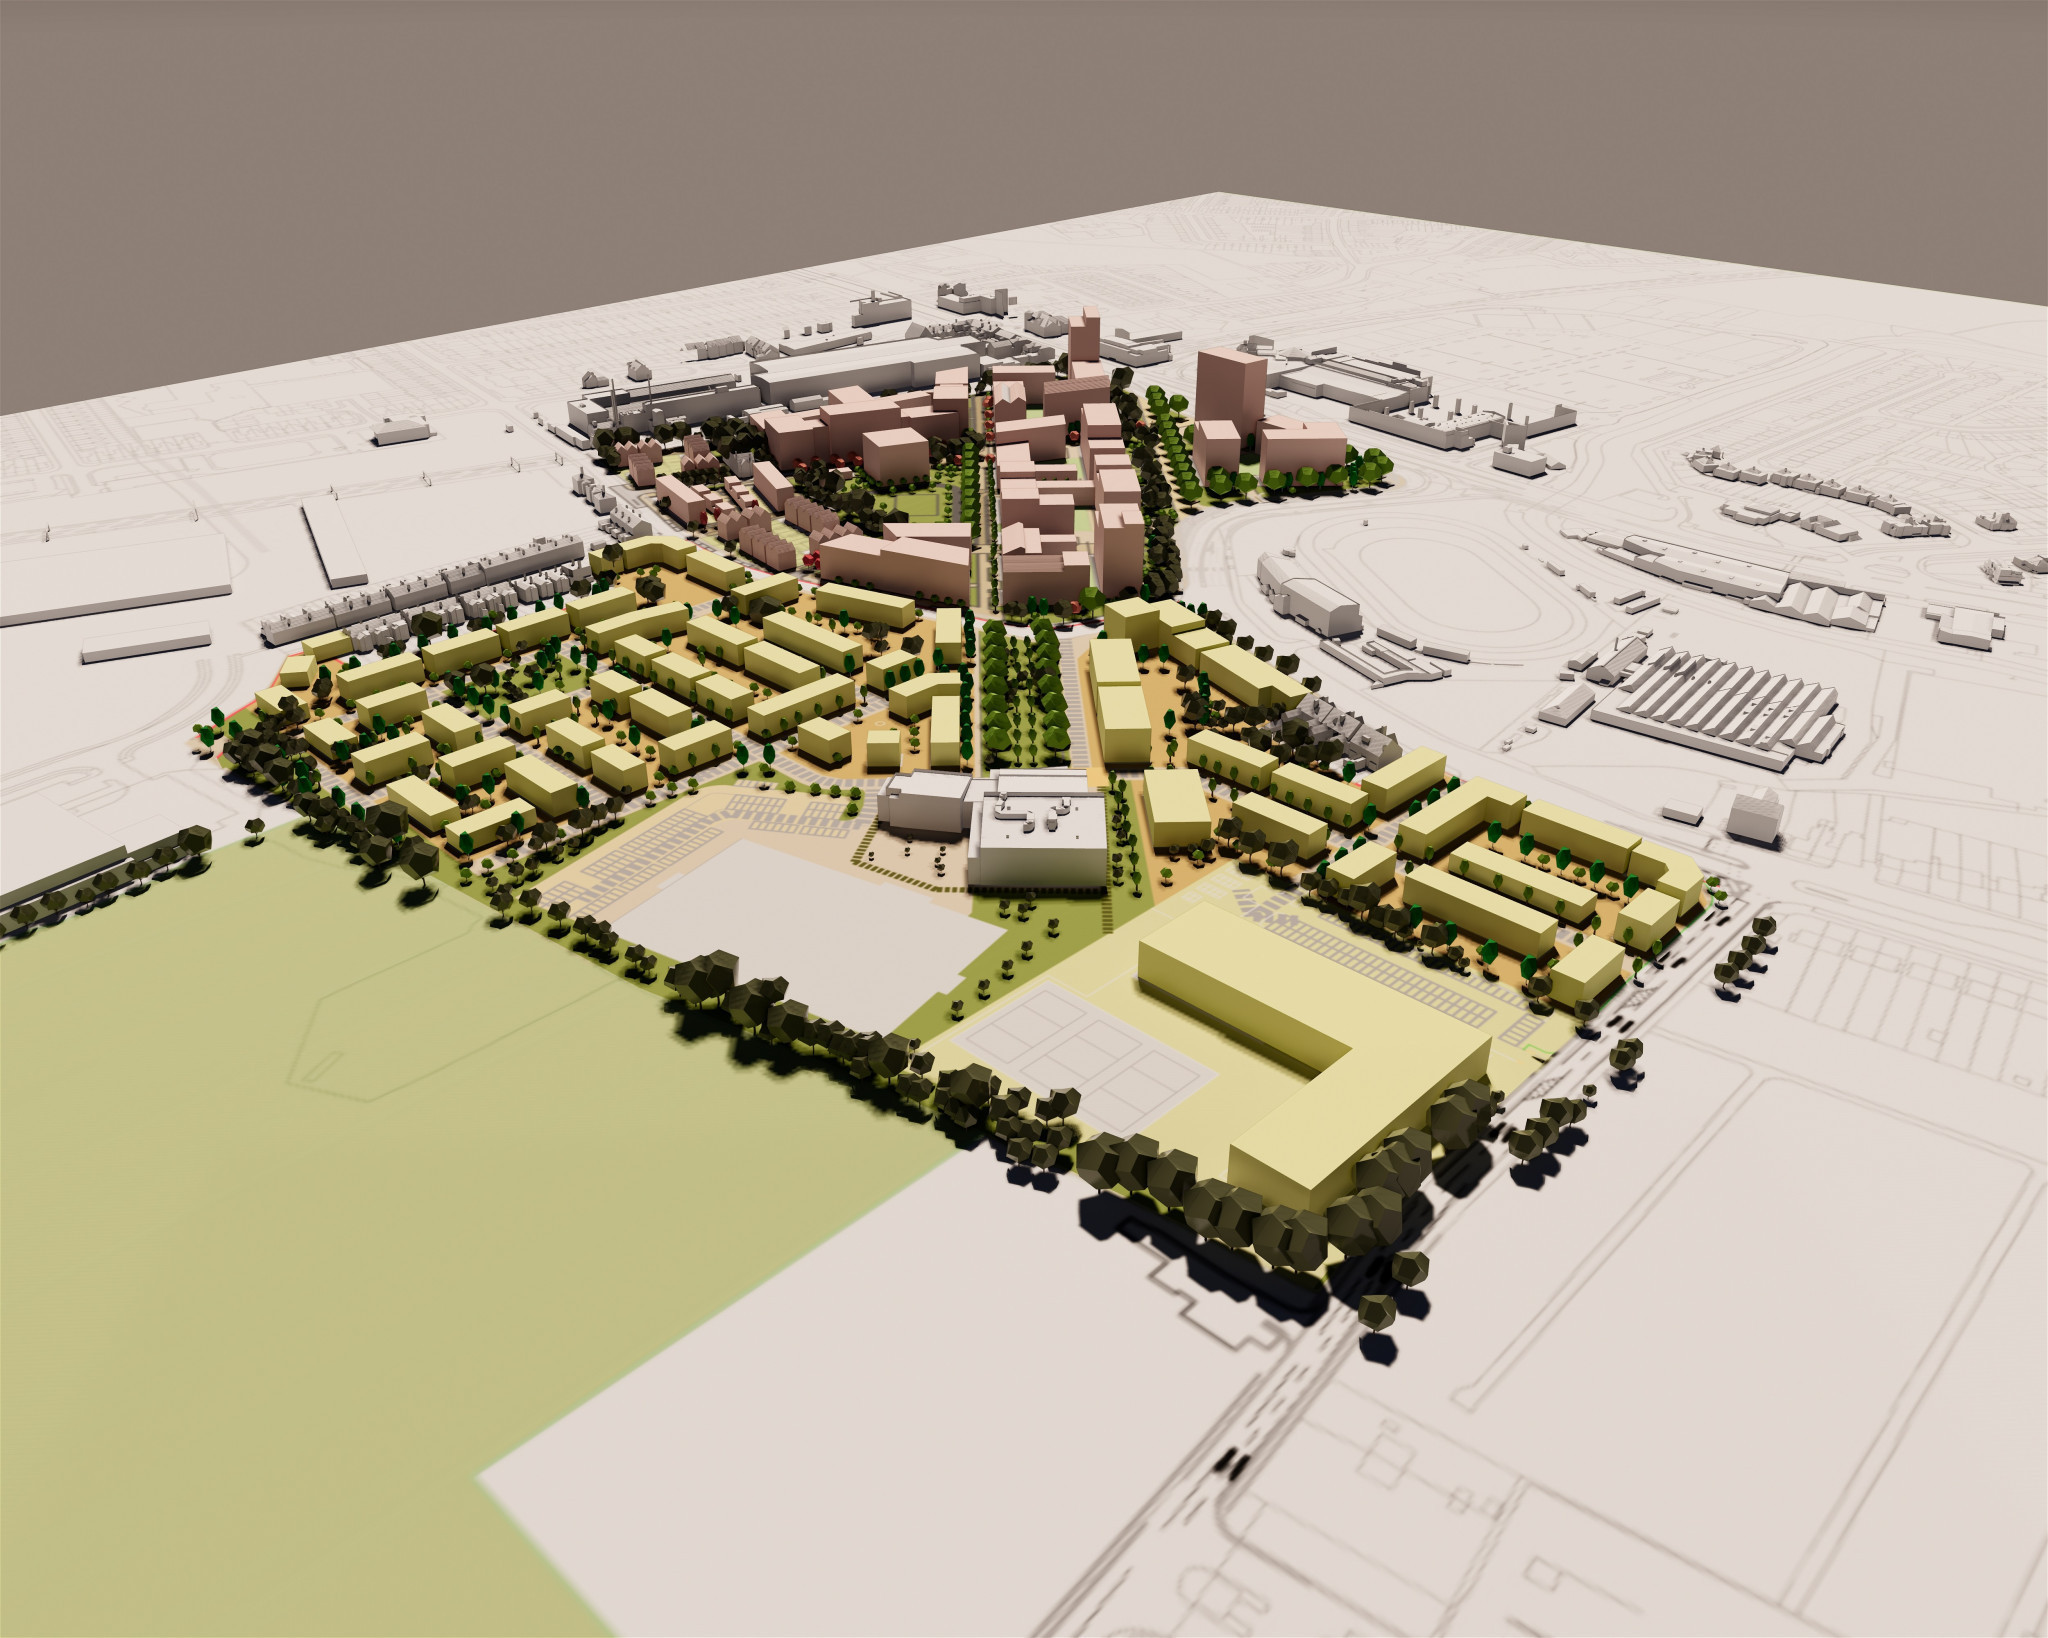 Cost of Birmingham 2022 Athletes' Village expected to increase